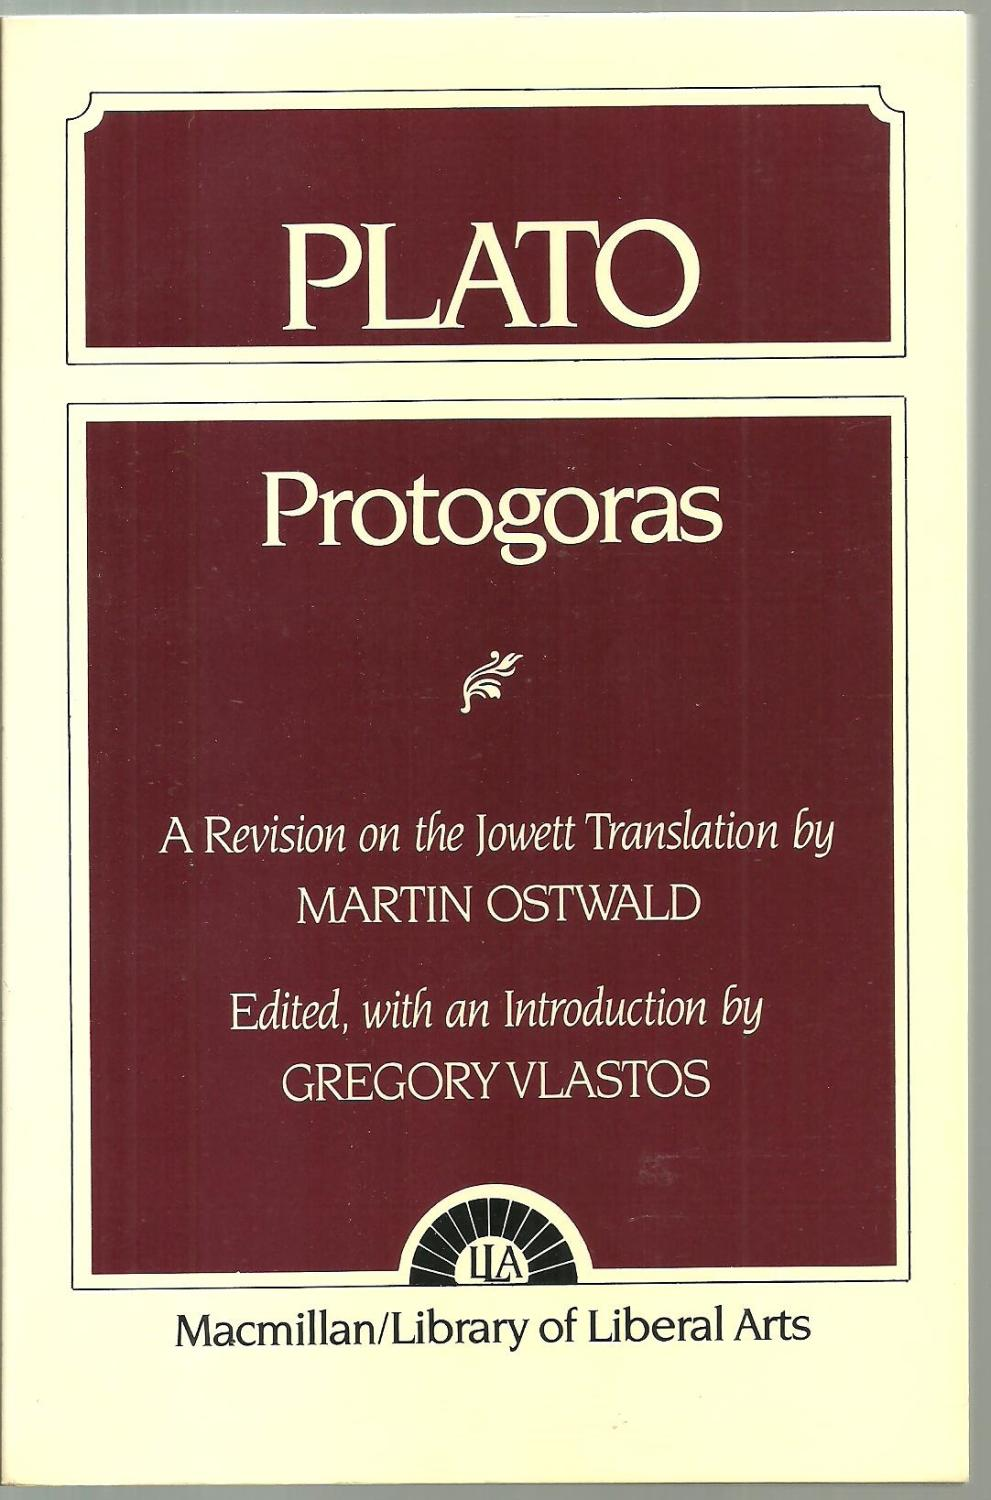 Protogoras: Plato, A Revision on the Jowett Translation by Martin Ostwald - Edited, with an introduction by Gregory Vlastos